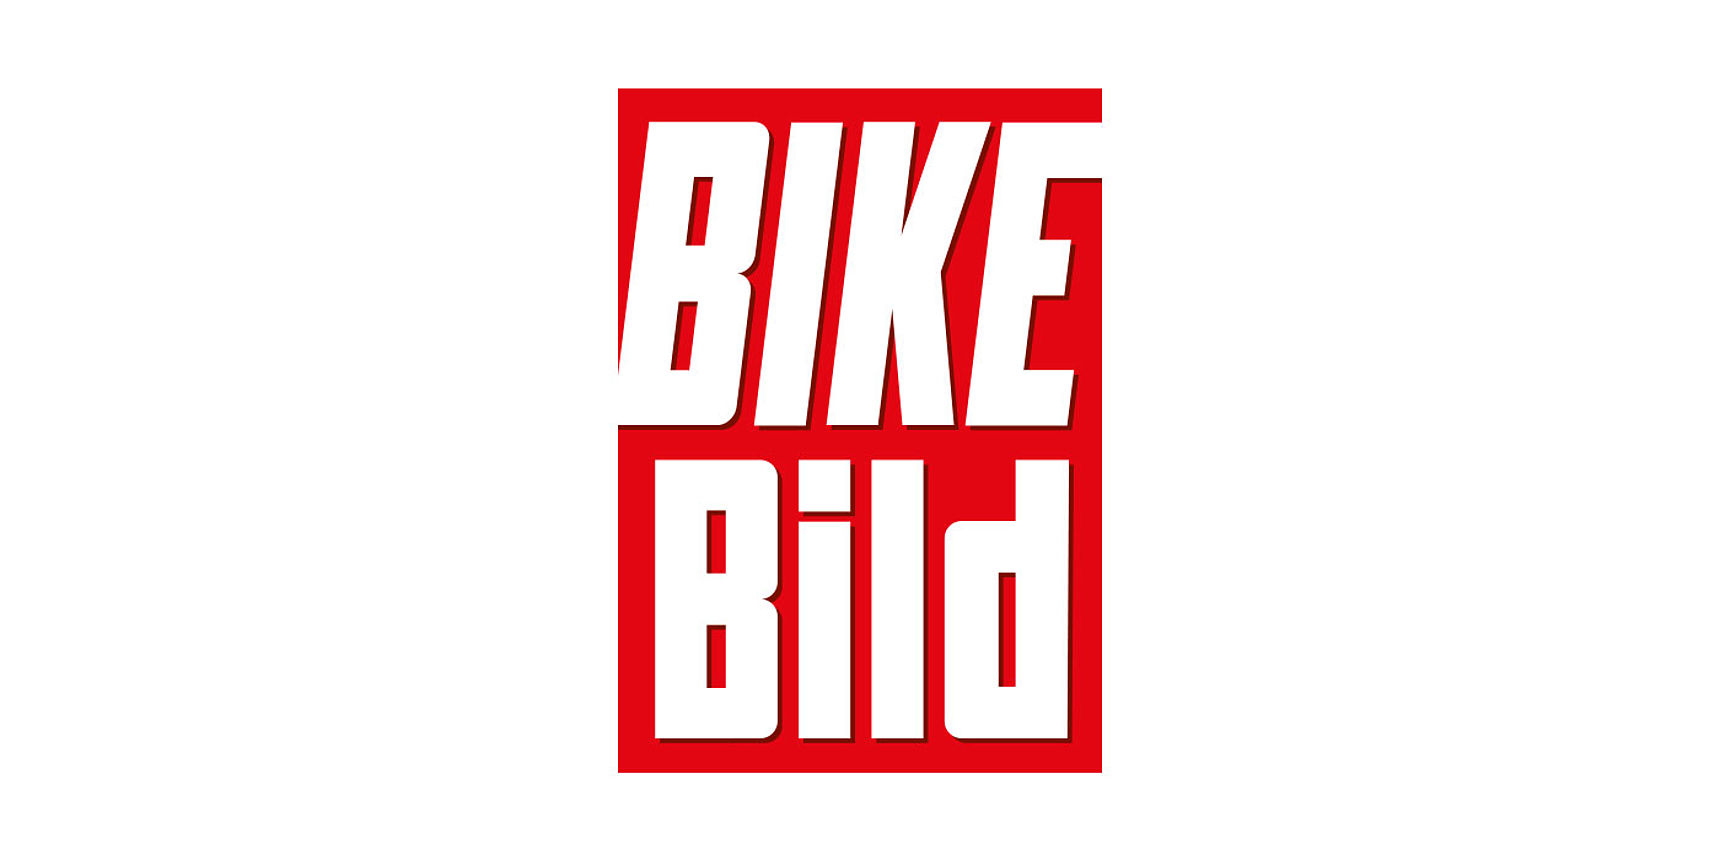 [Translate to English:] Logo Bike Bild